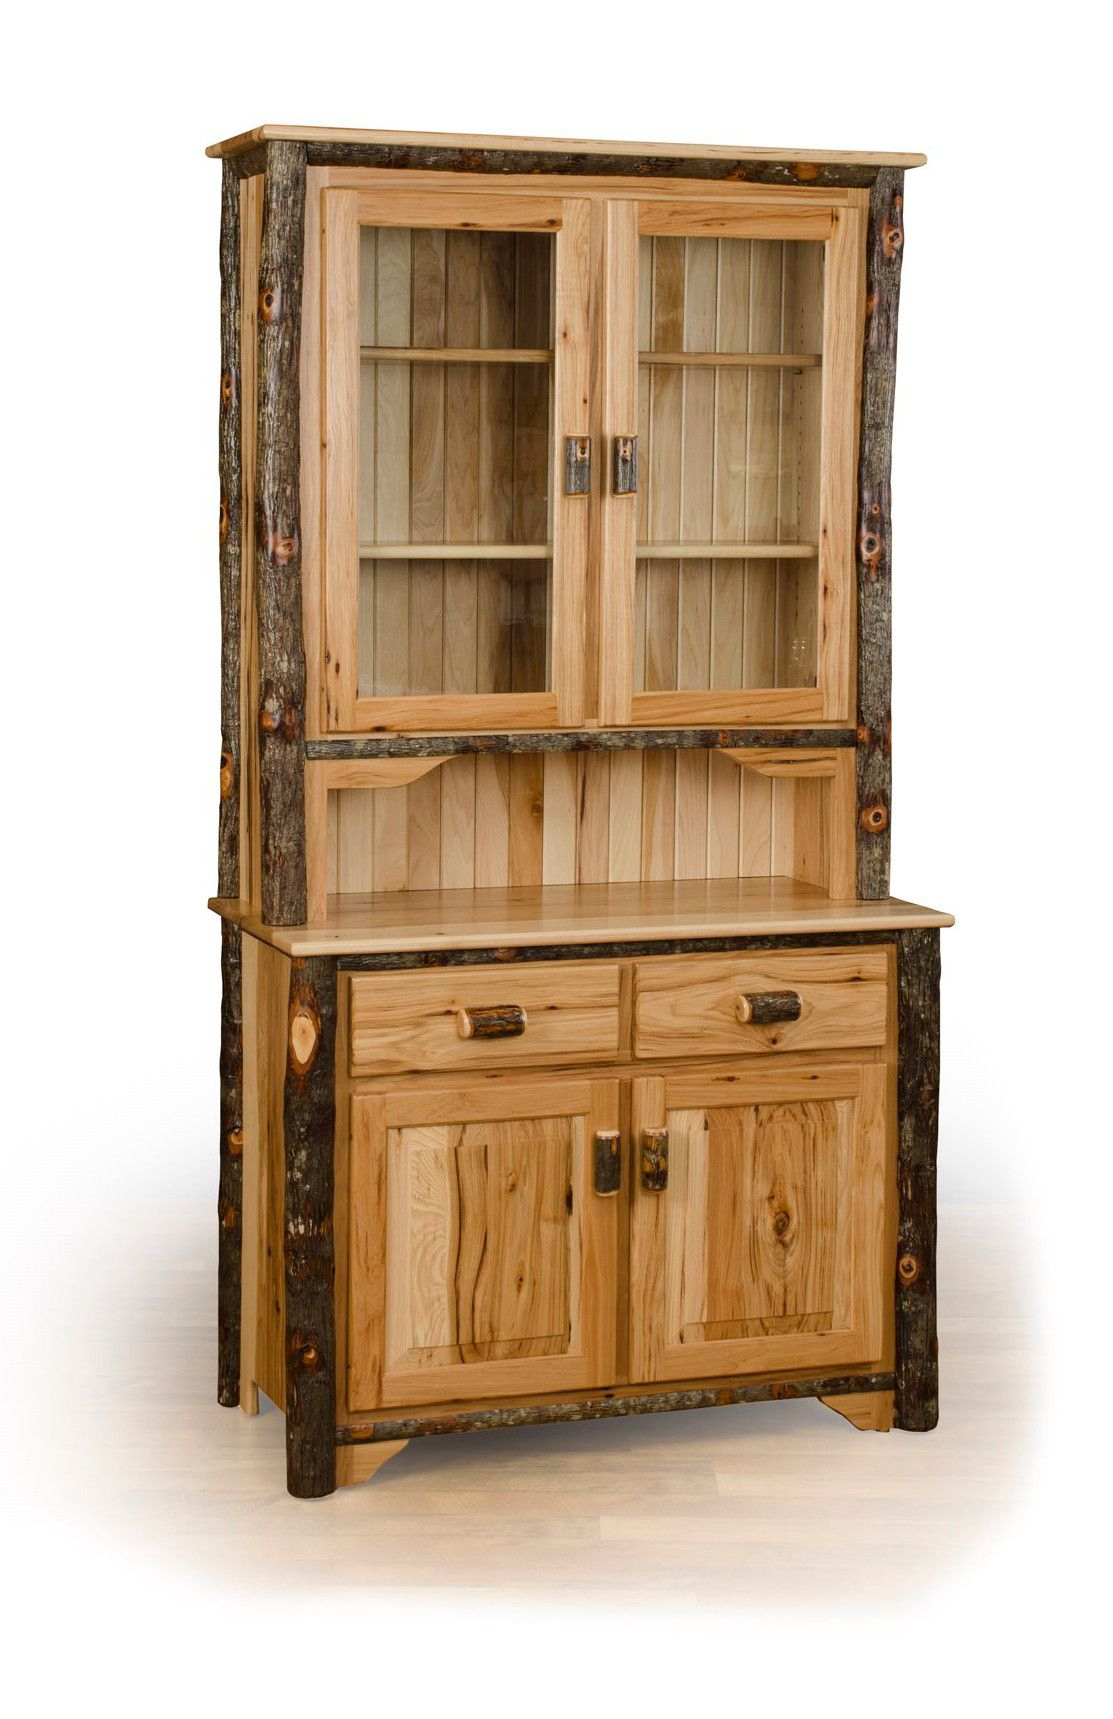 Rustic Hickory 2 Door Side Board Server/buffet | Houses And Intended For Contemporary Wooden Buffets With One Side Door Storage Cabinets And Two Drawers (Gallery 28 of 30)